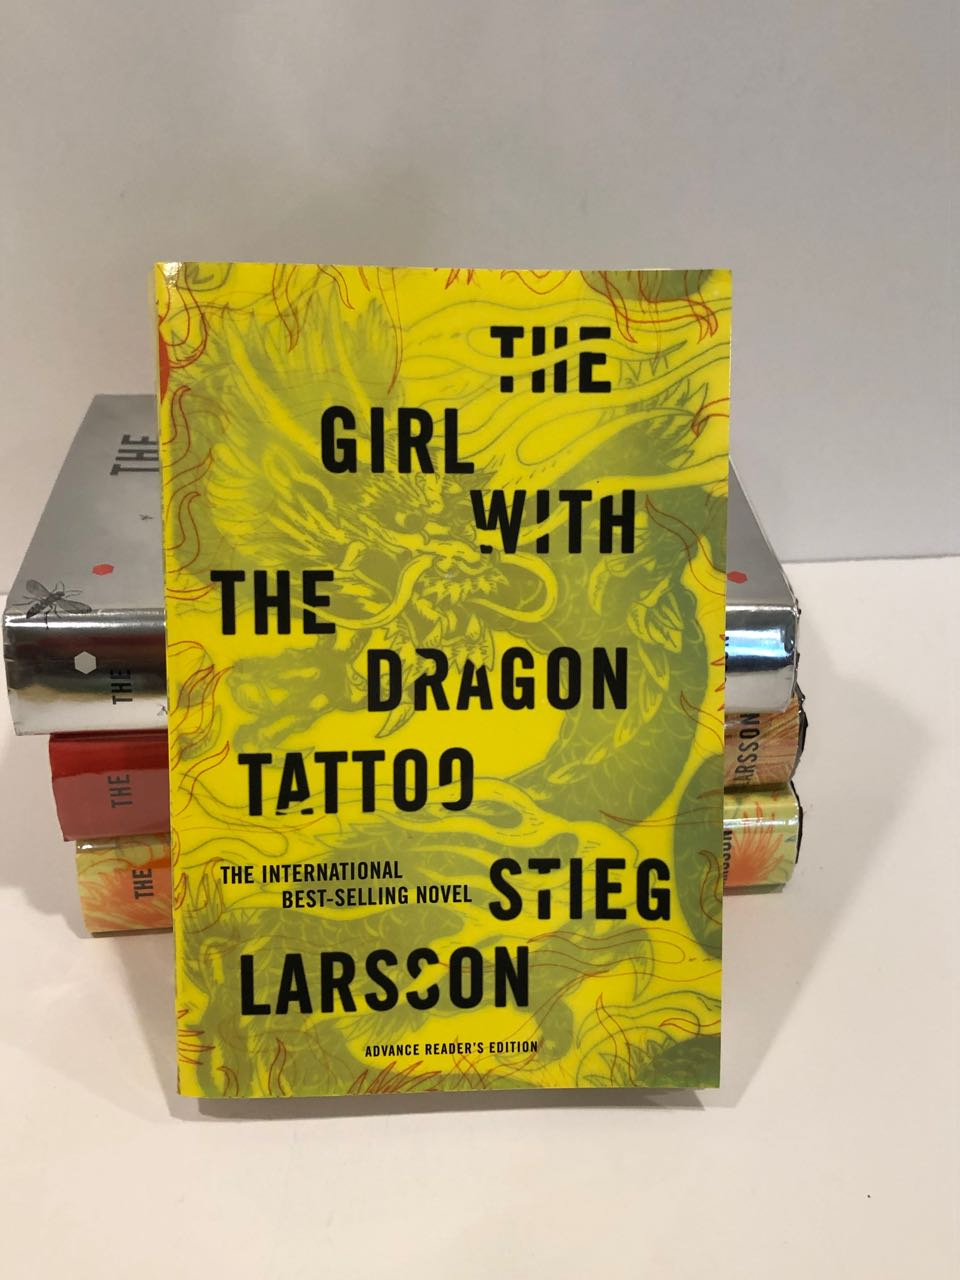 Image for Stieg Larsson's Millennium Trilogy: The Girl with the Dragon Tattoo, The Girl Who Played with Fire, The Girl Who Kicked the Hornet's Nest